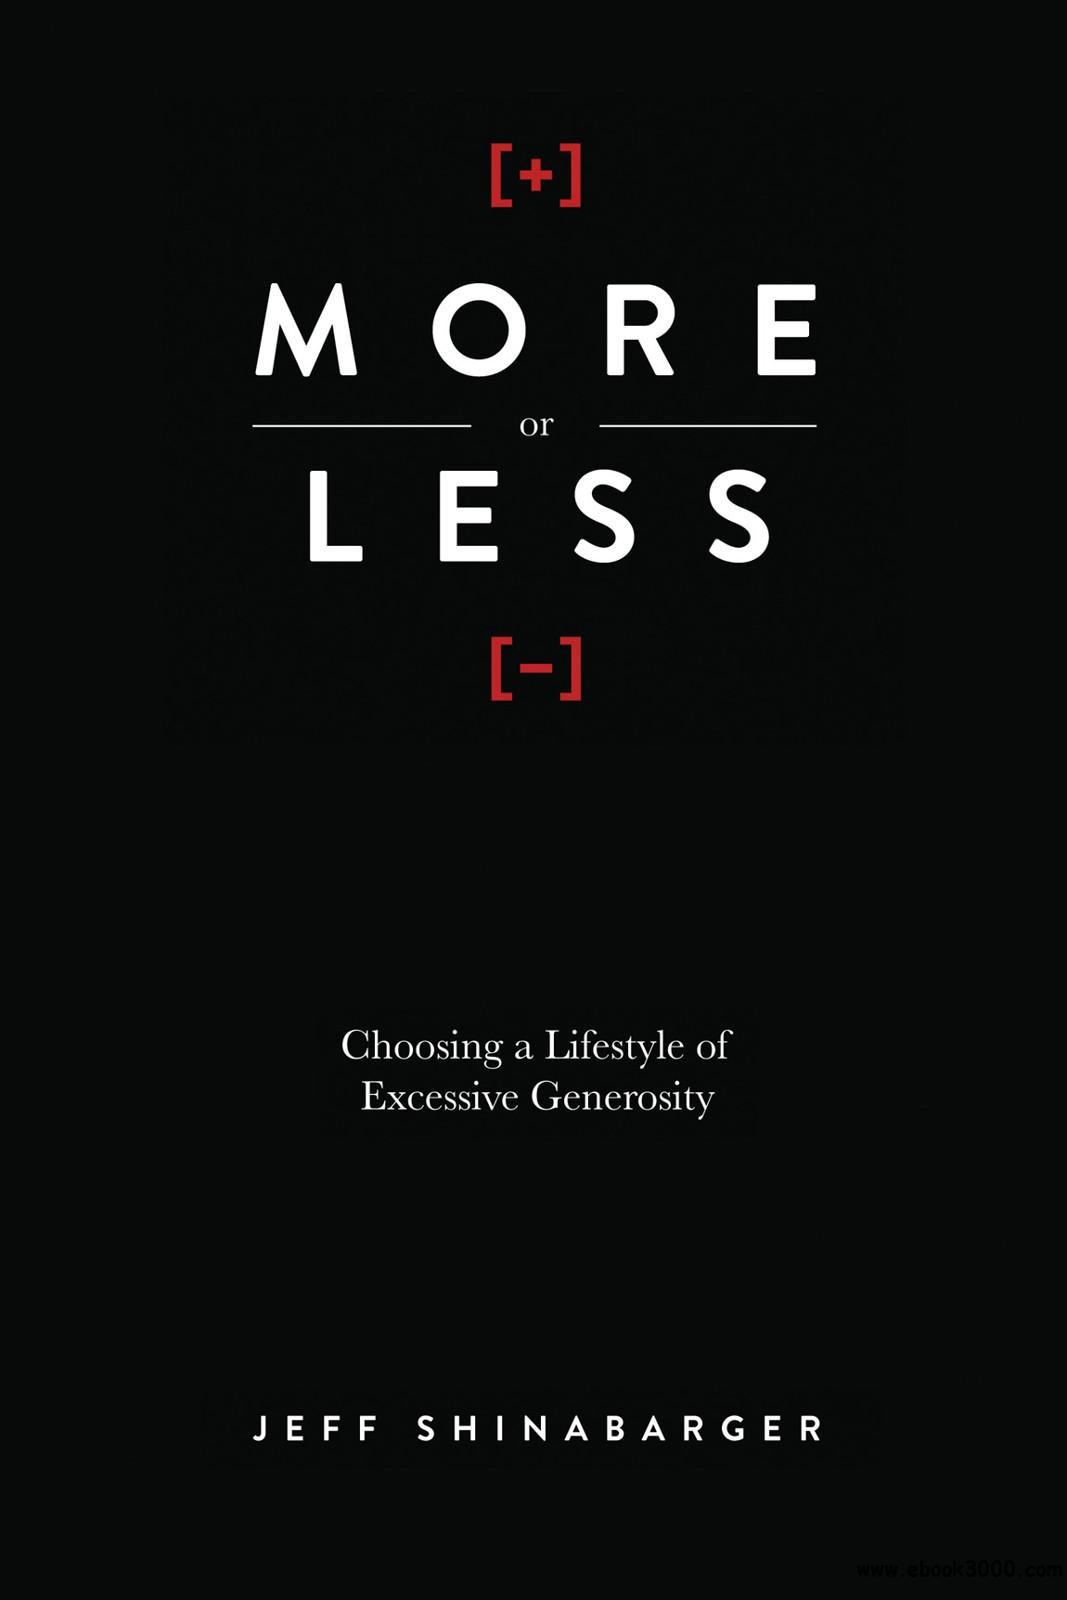 More or Less: Choosing a Lifestyle of Excessive Generosity download dree